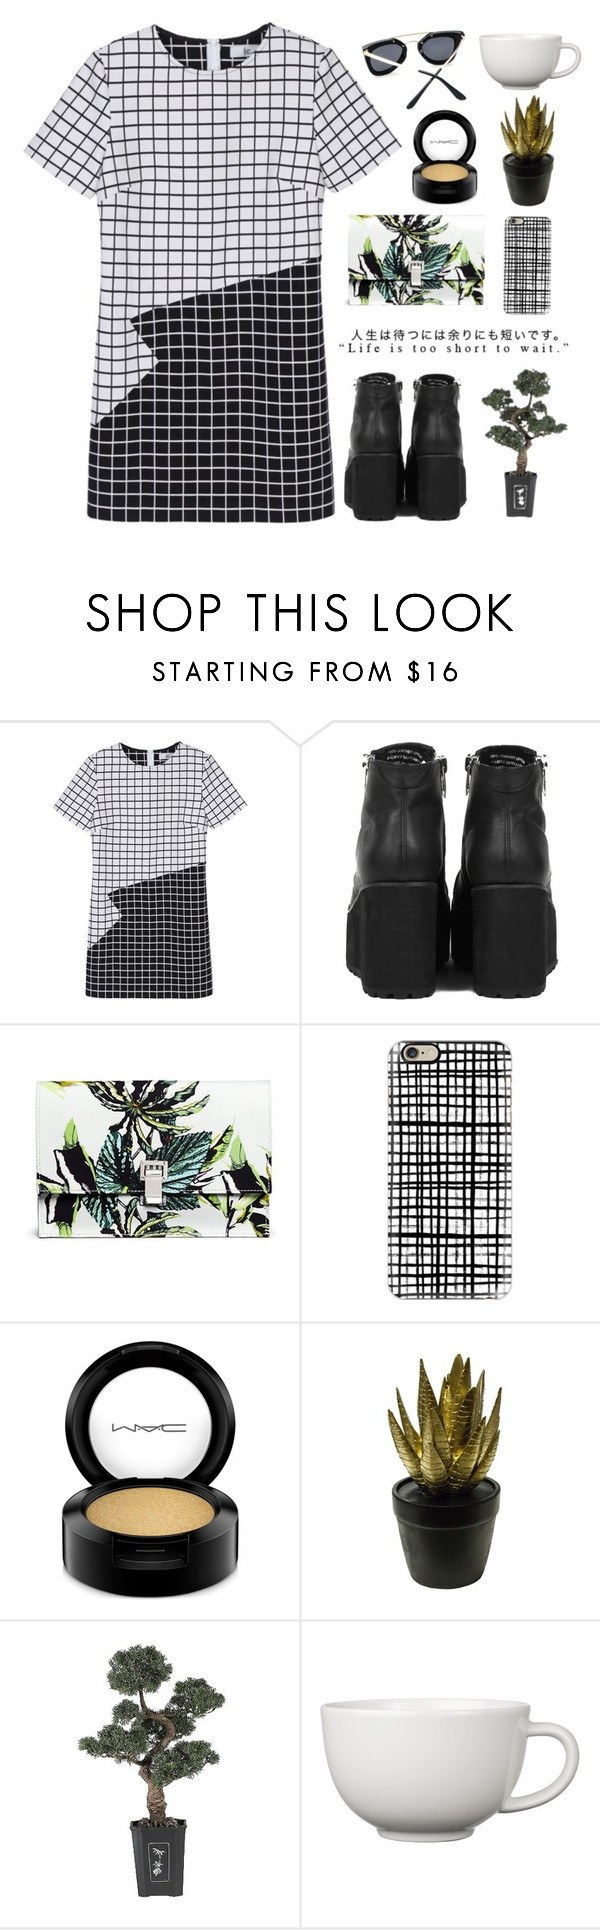 """""""Untitled #628"""" by keziakaligis ❤ liked on Polyvore featuring Proenza Schouler, Casetify, MAC Cosmetics, Sagebrook Home, Nearly Natural and Arabia"""